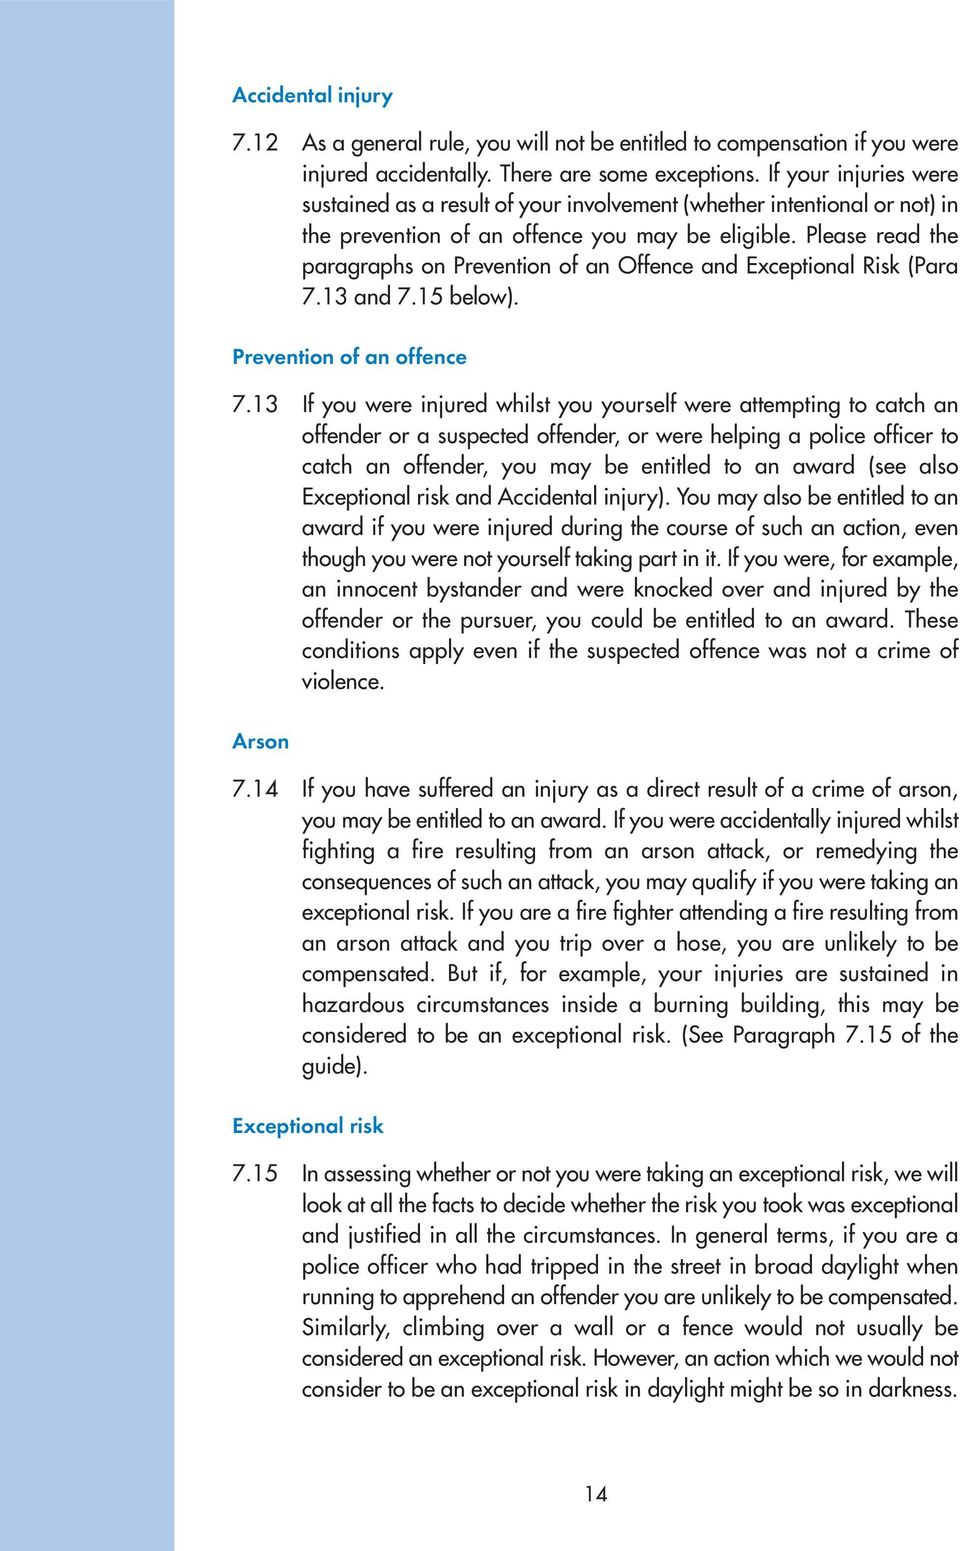 Please read the paragraphs on Prevention of an Offence and Exceptional Risk (Para 7.13 and 7.15 below). Prevention of an offence 7.